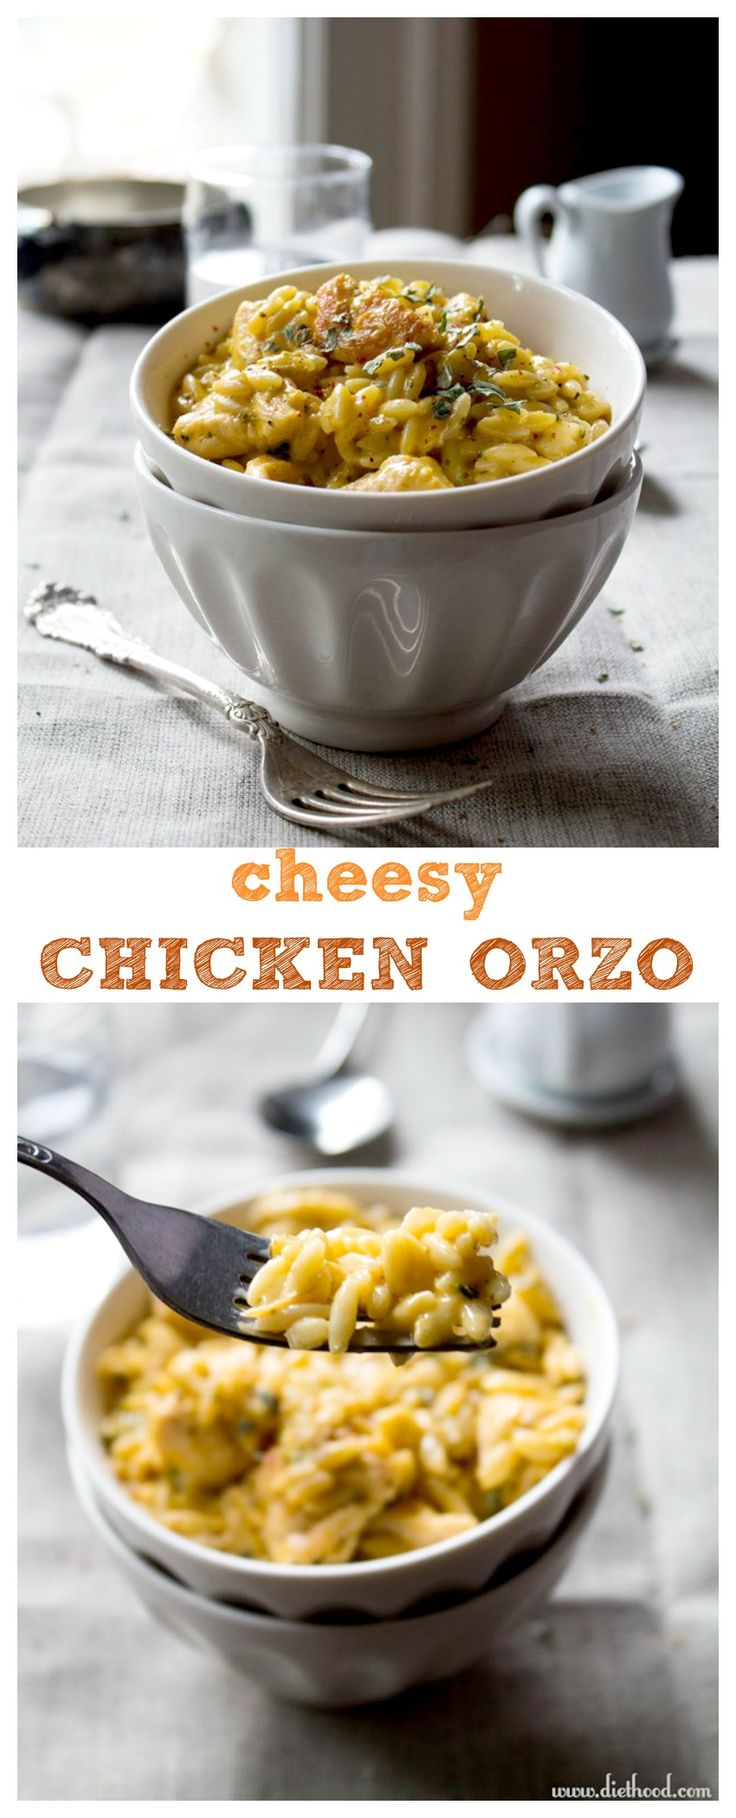 Cheesy Chicken Orzo - SO delicious and so cheesy! All made from scratch with chicken, cheddar cheese, and orzo.